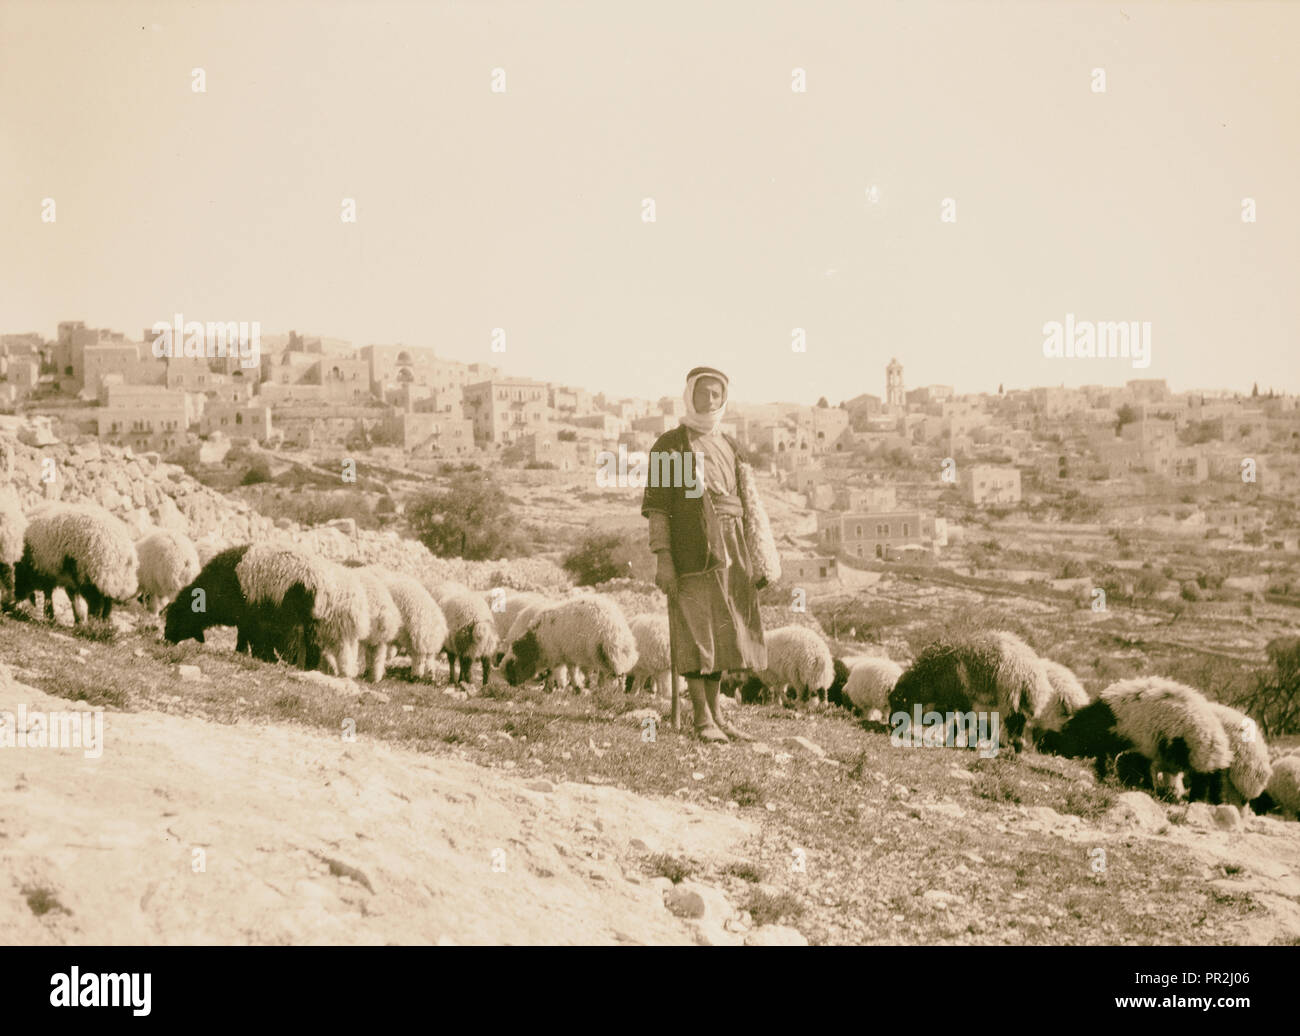 Bethlehem and surroundings. Bethlehem shepherd. 'Out of thee shall come forth one that shall shepherd my people'. 1920, West - Stock Image